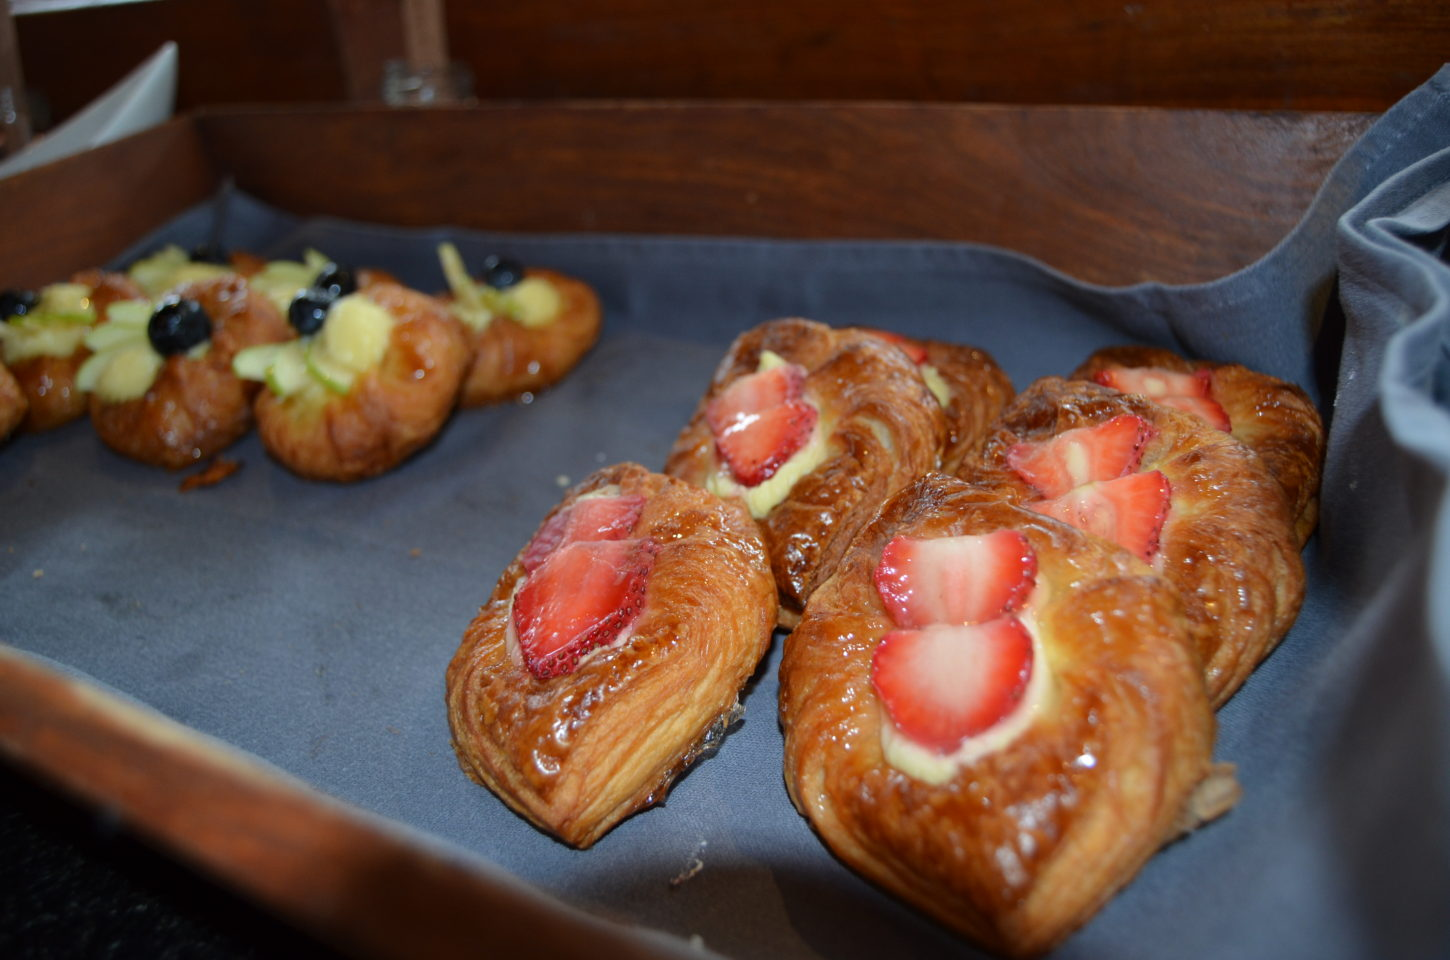 Pastries galore at Fushi Cafe breakfast